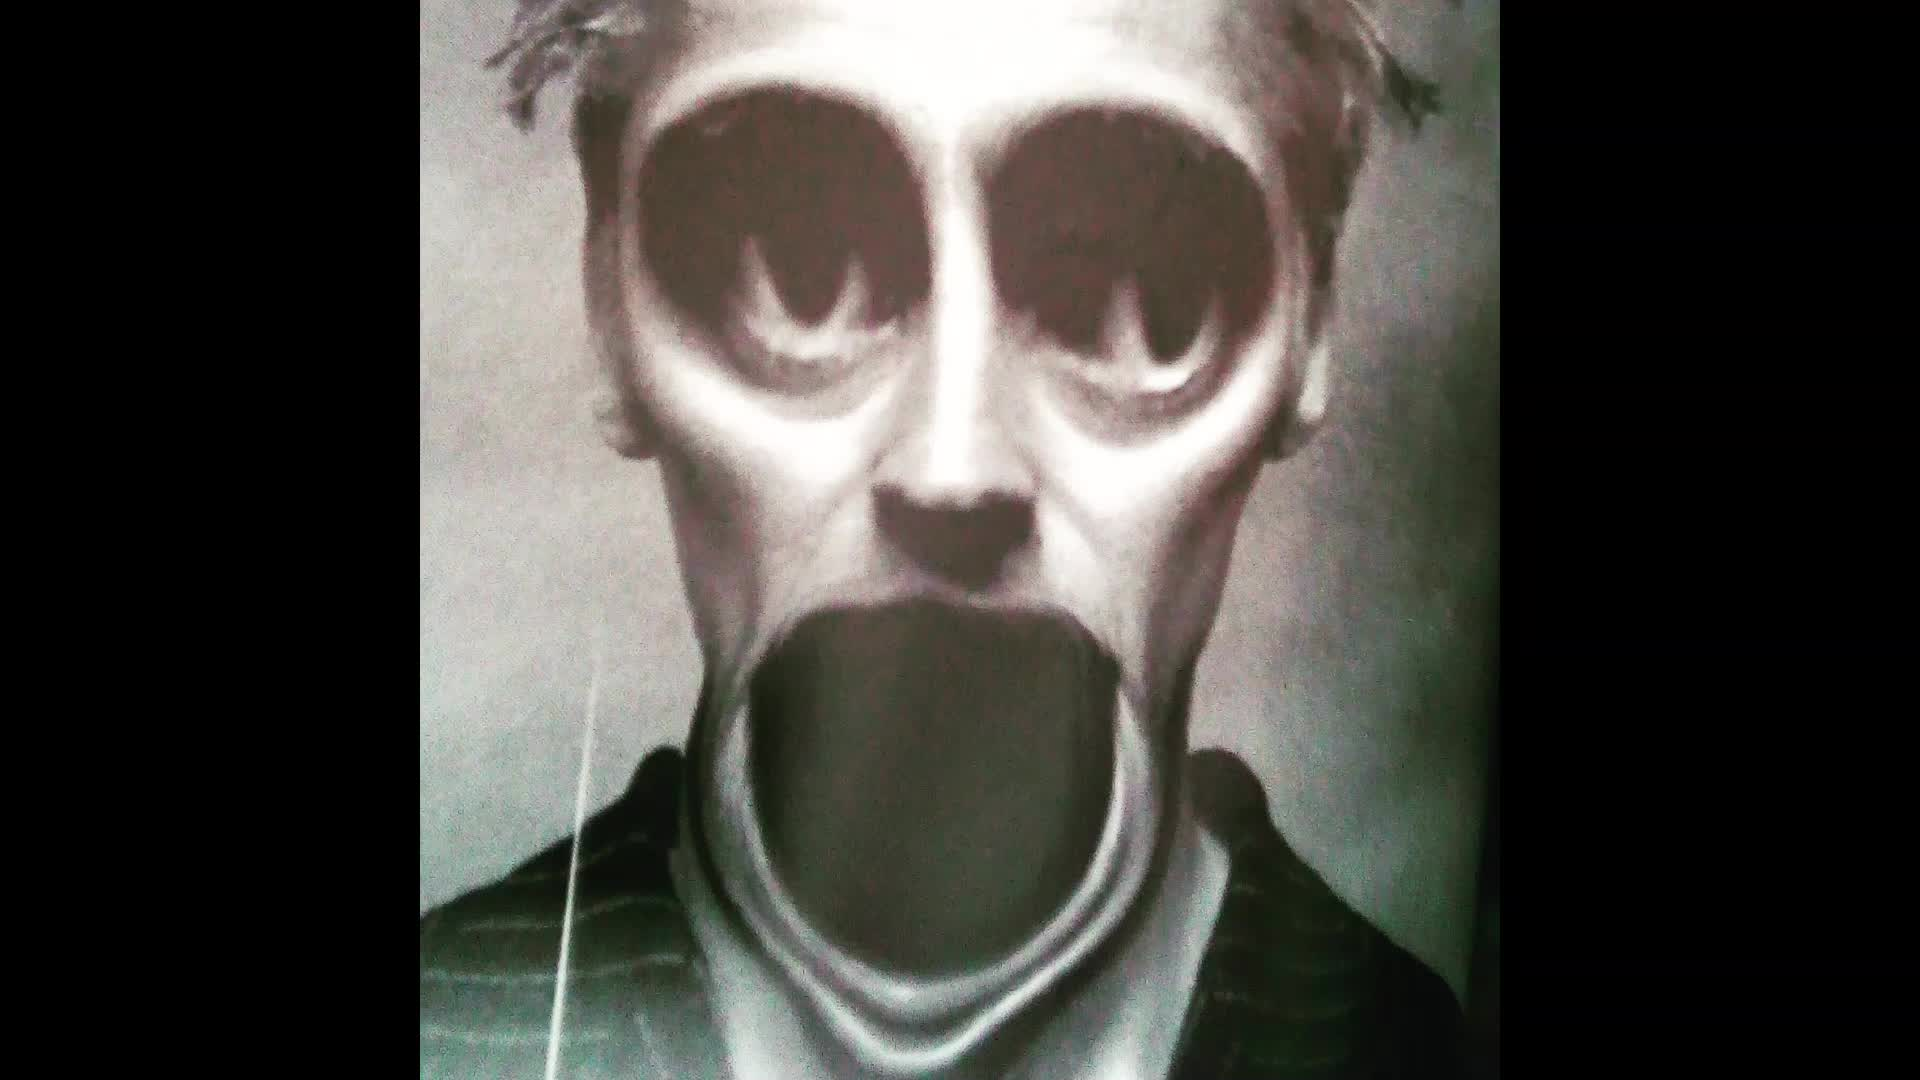 Tranny Epidemic WARNING DISTURBING IMAGES OF MENTALLY ILL MEN